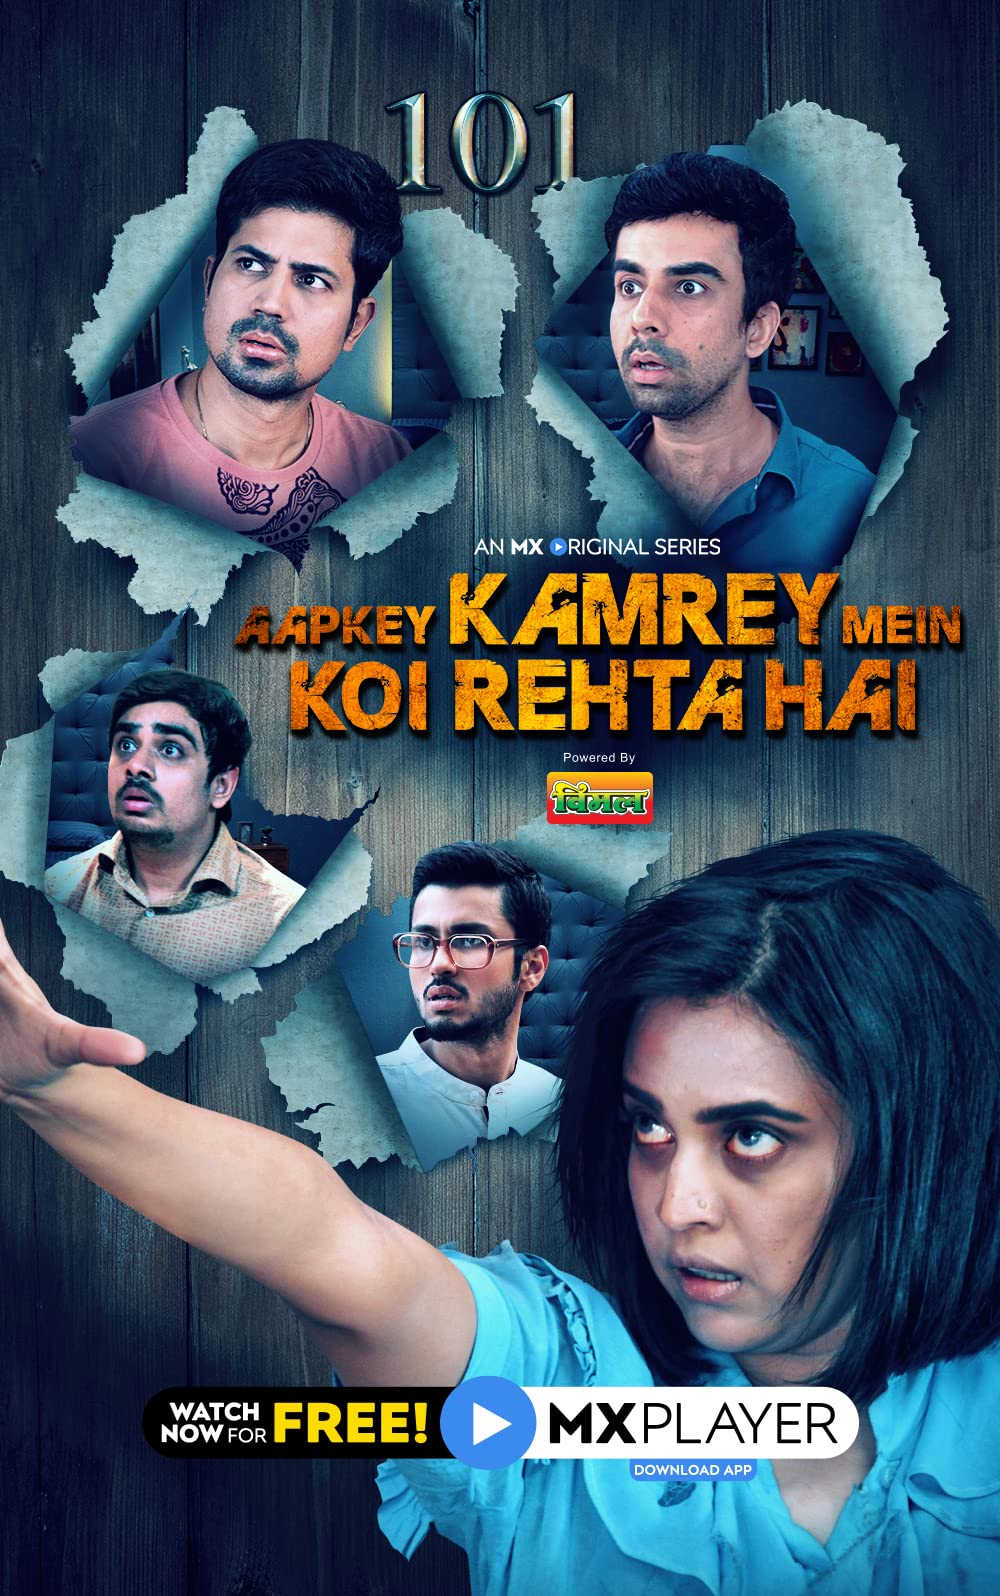 Aapkey Kamrey Mein Koi Rehta Hai 2021 S01 Hindi Complete MX Original Web Series 320MB HDRip Download